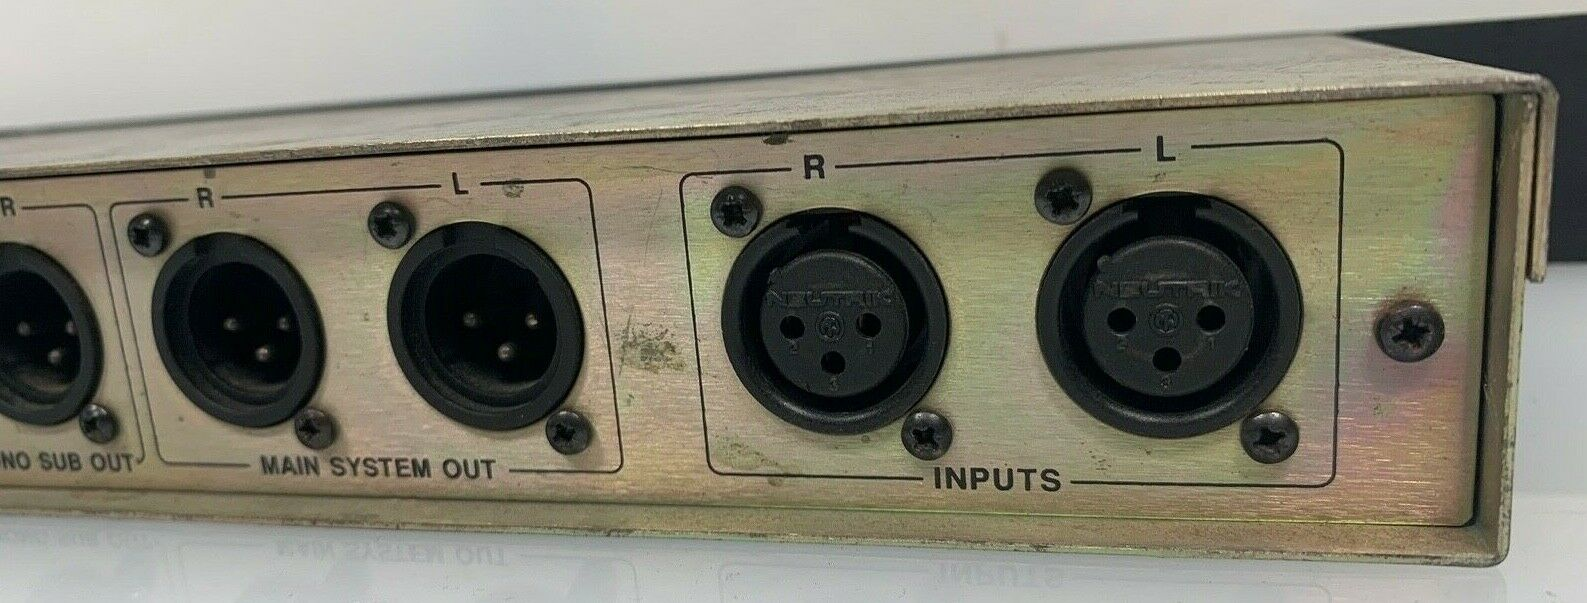 Tannoy TX1 System Controller